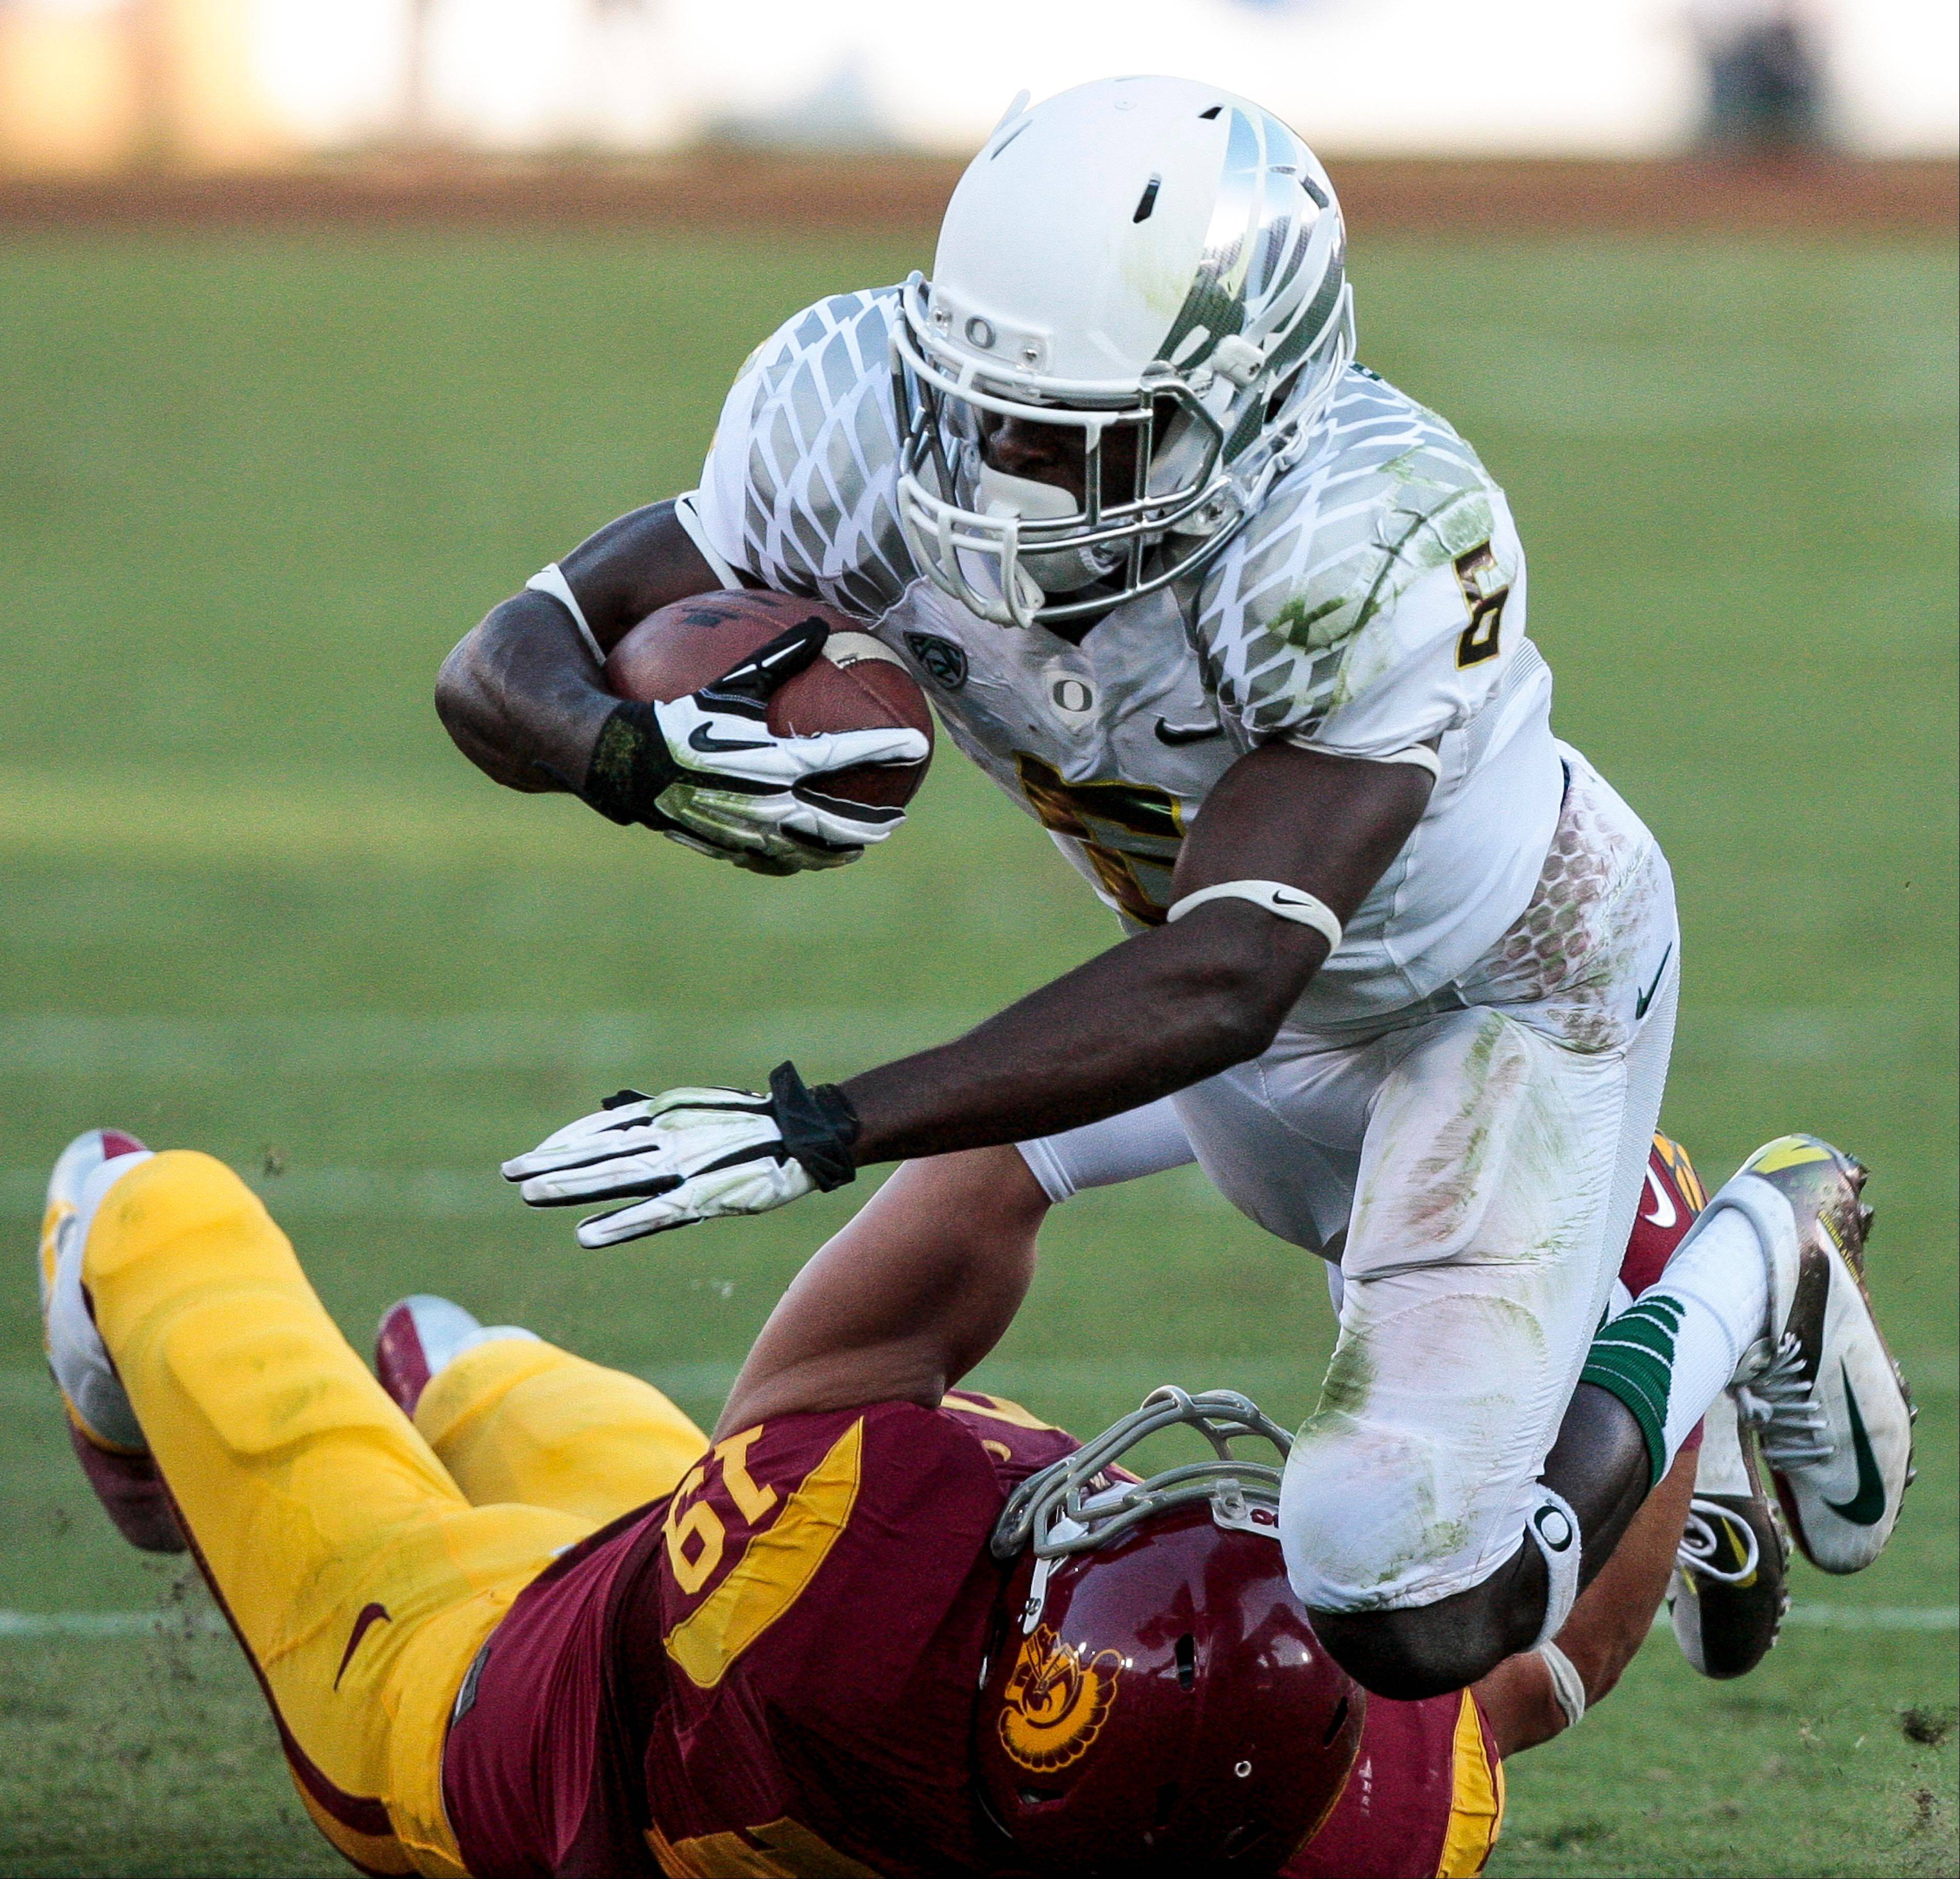 Oregon running back De�Anthony Thomas is tackled by Southern California safety Drew McAllister Saturday during the first half in Los Angeles. Oregon won 62-51.